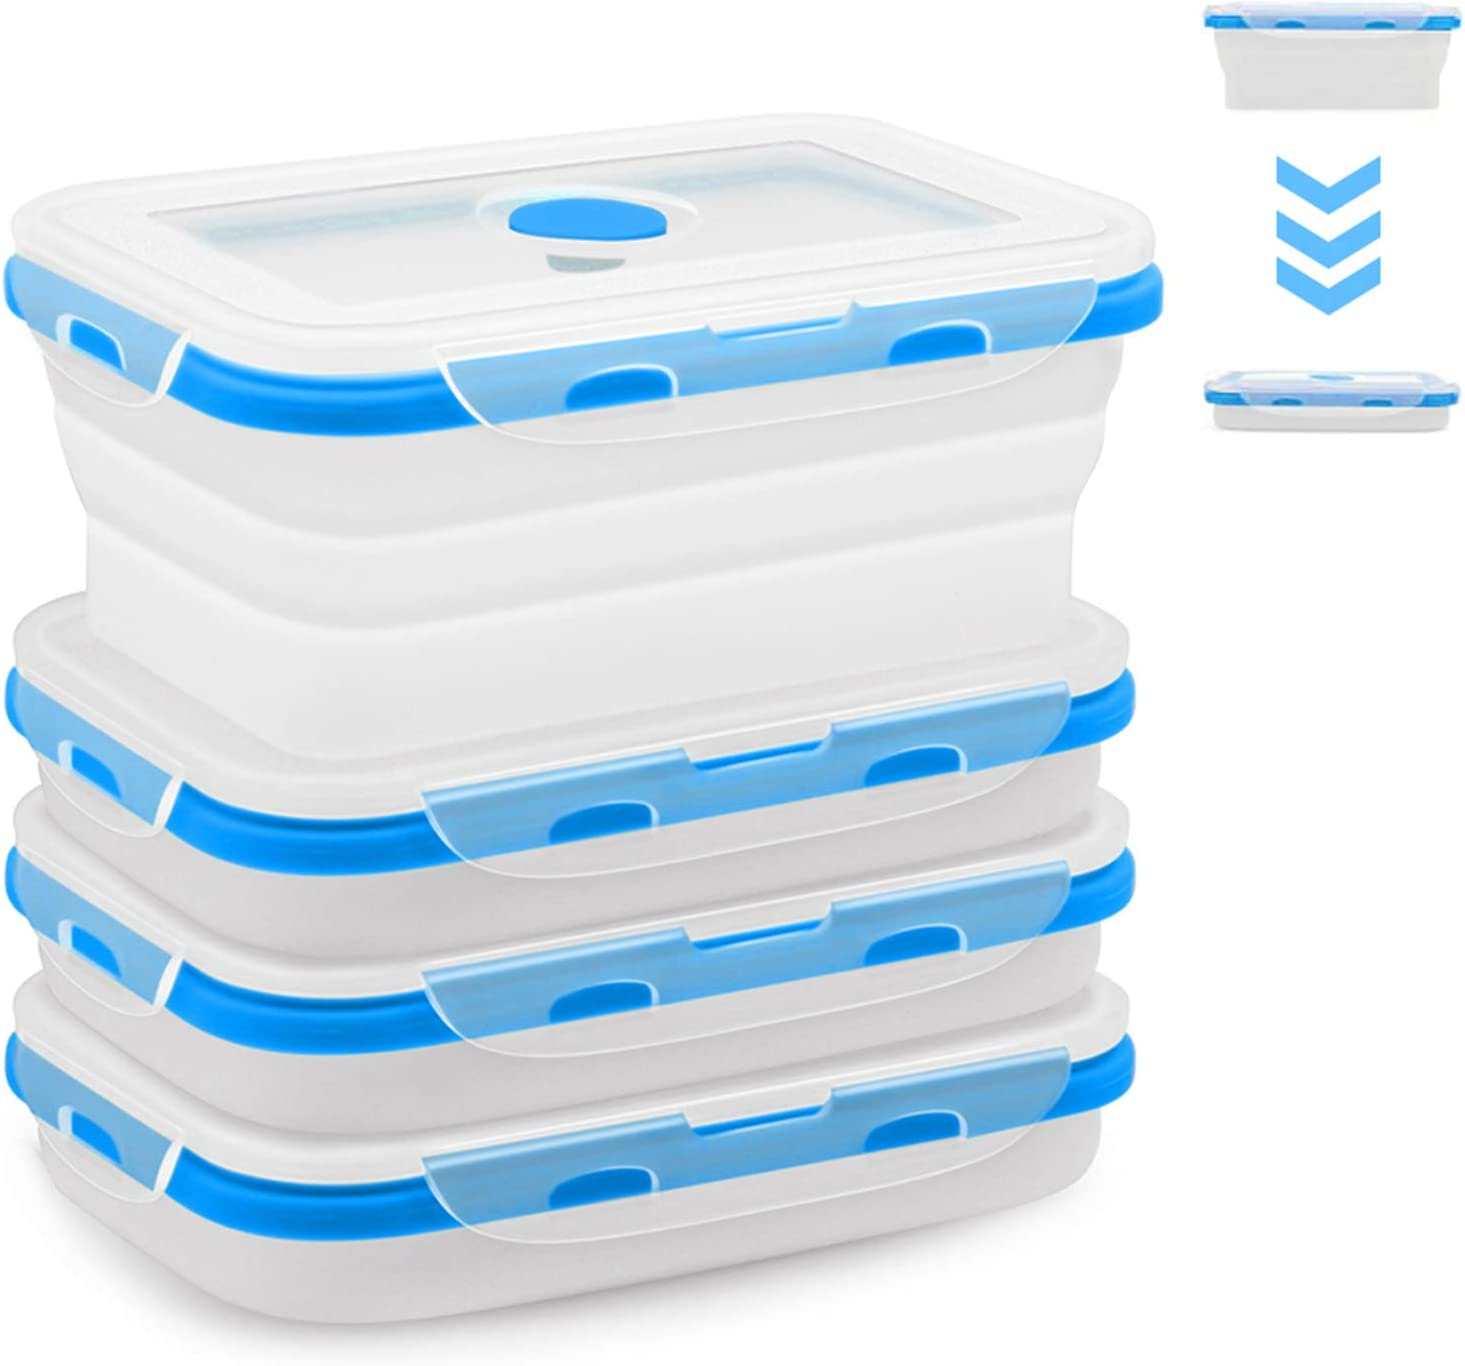 4 Pack Food Storage Container with Lids, Collapsible Silicone Food Preserving Storage Boxes, Lunch Boxes, BPA Free,Oven Microwave Freezer and Dishwasher Safe (Same Capacity)